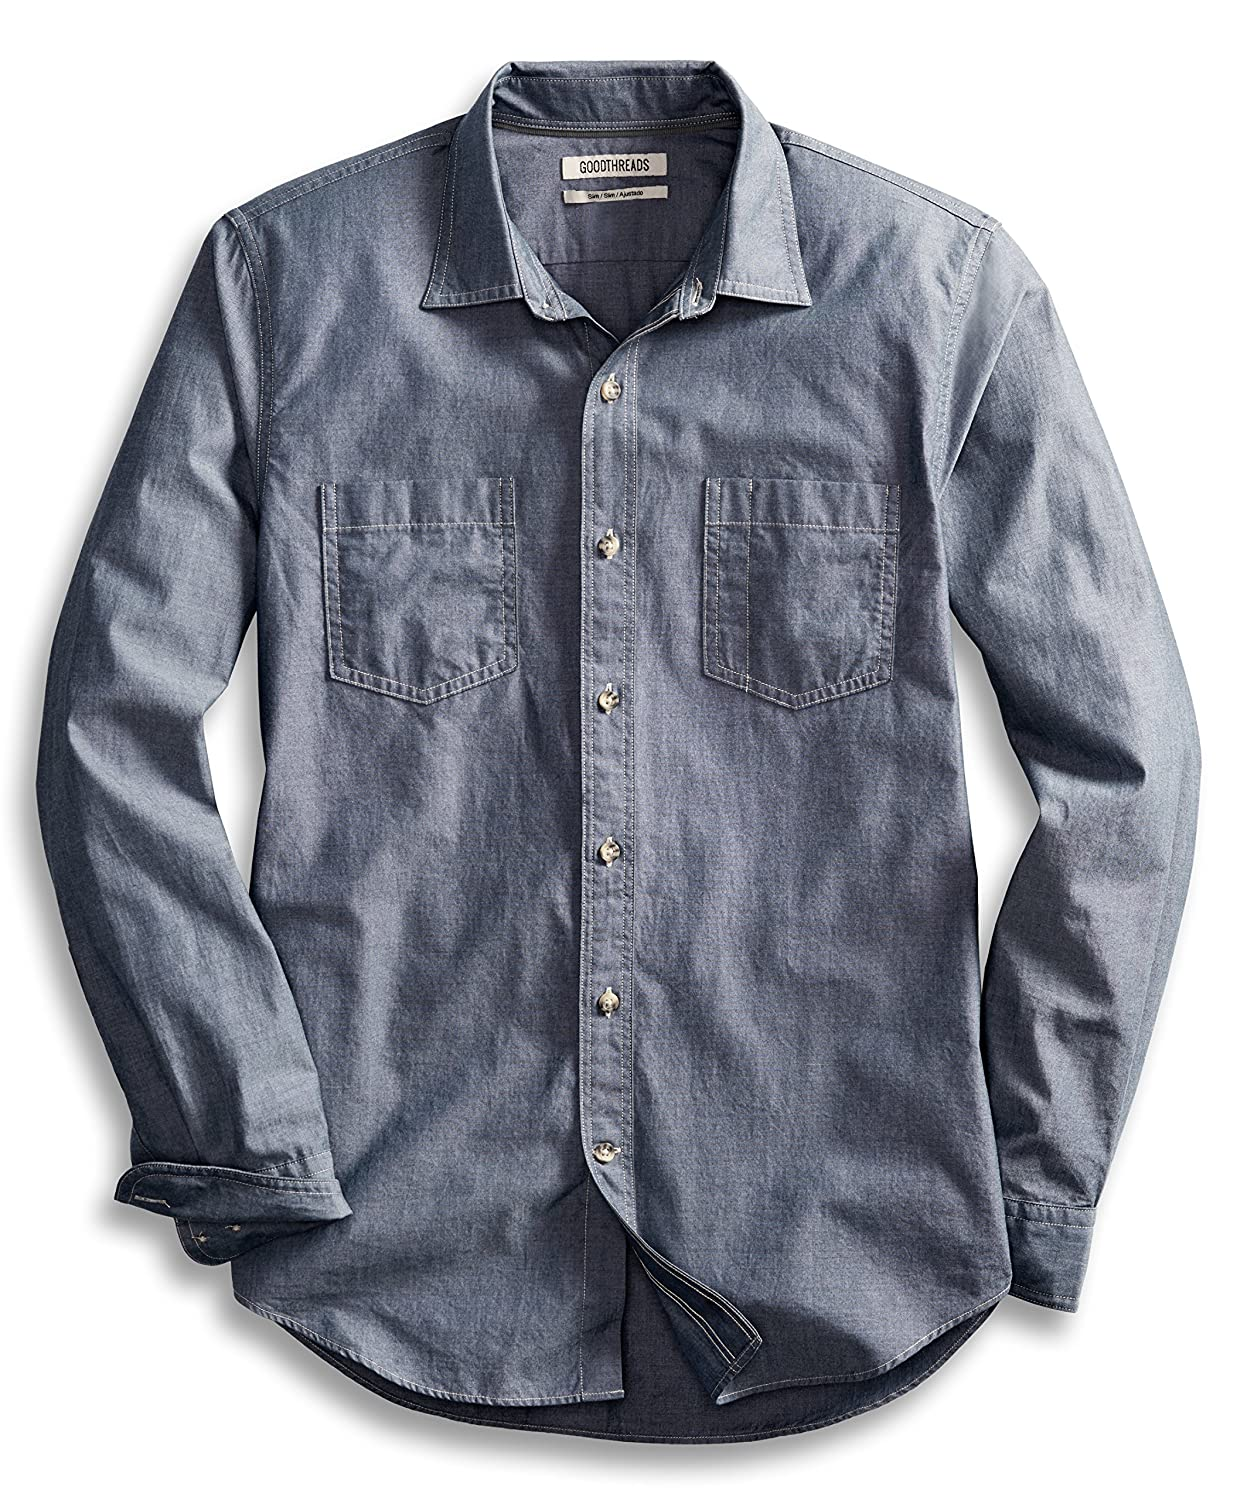 Chambray shirt images galleries with for Men s dobby shirt